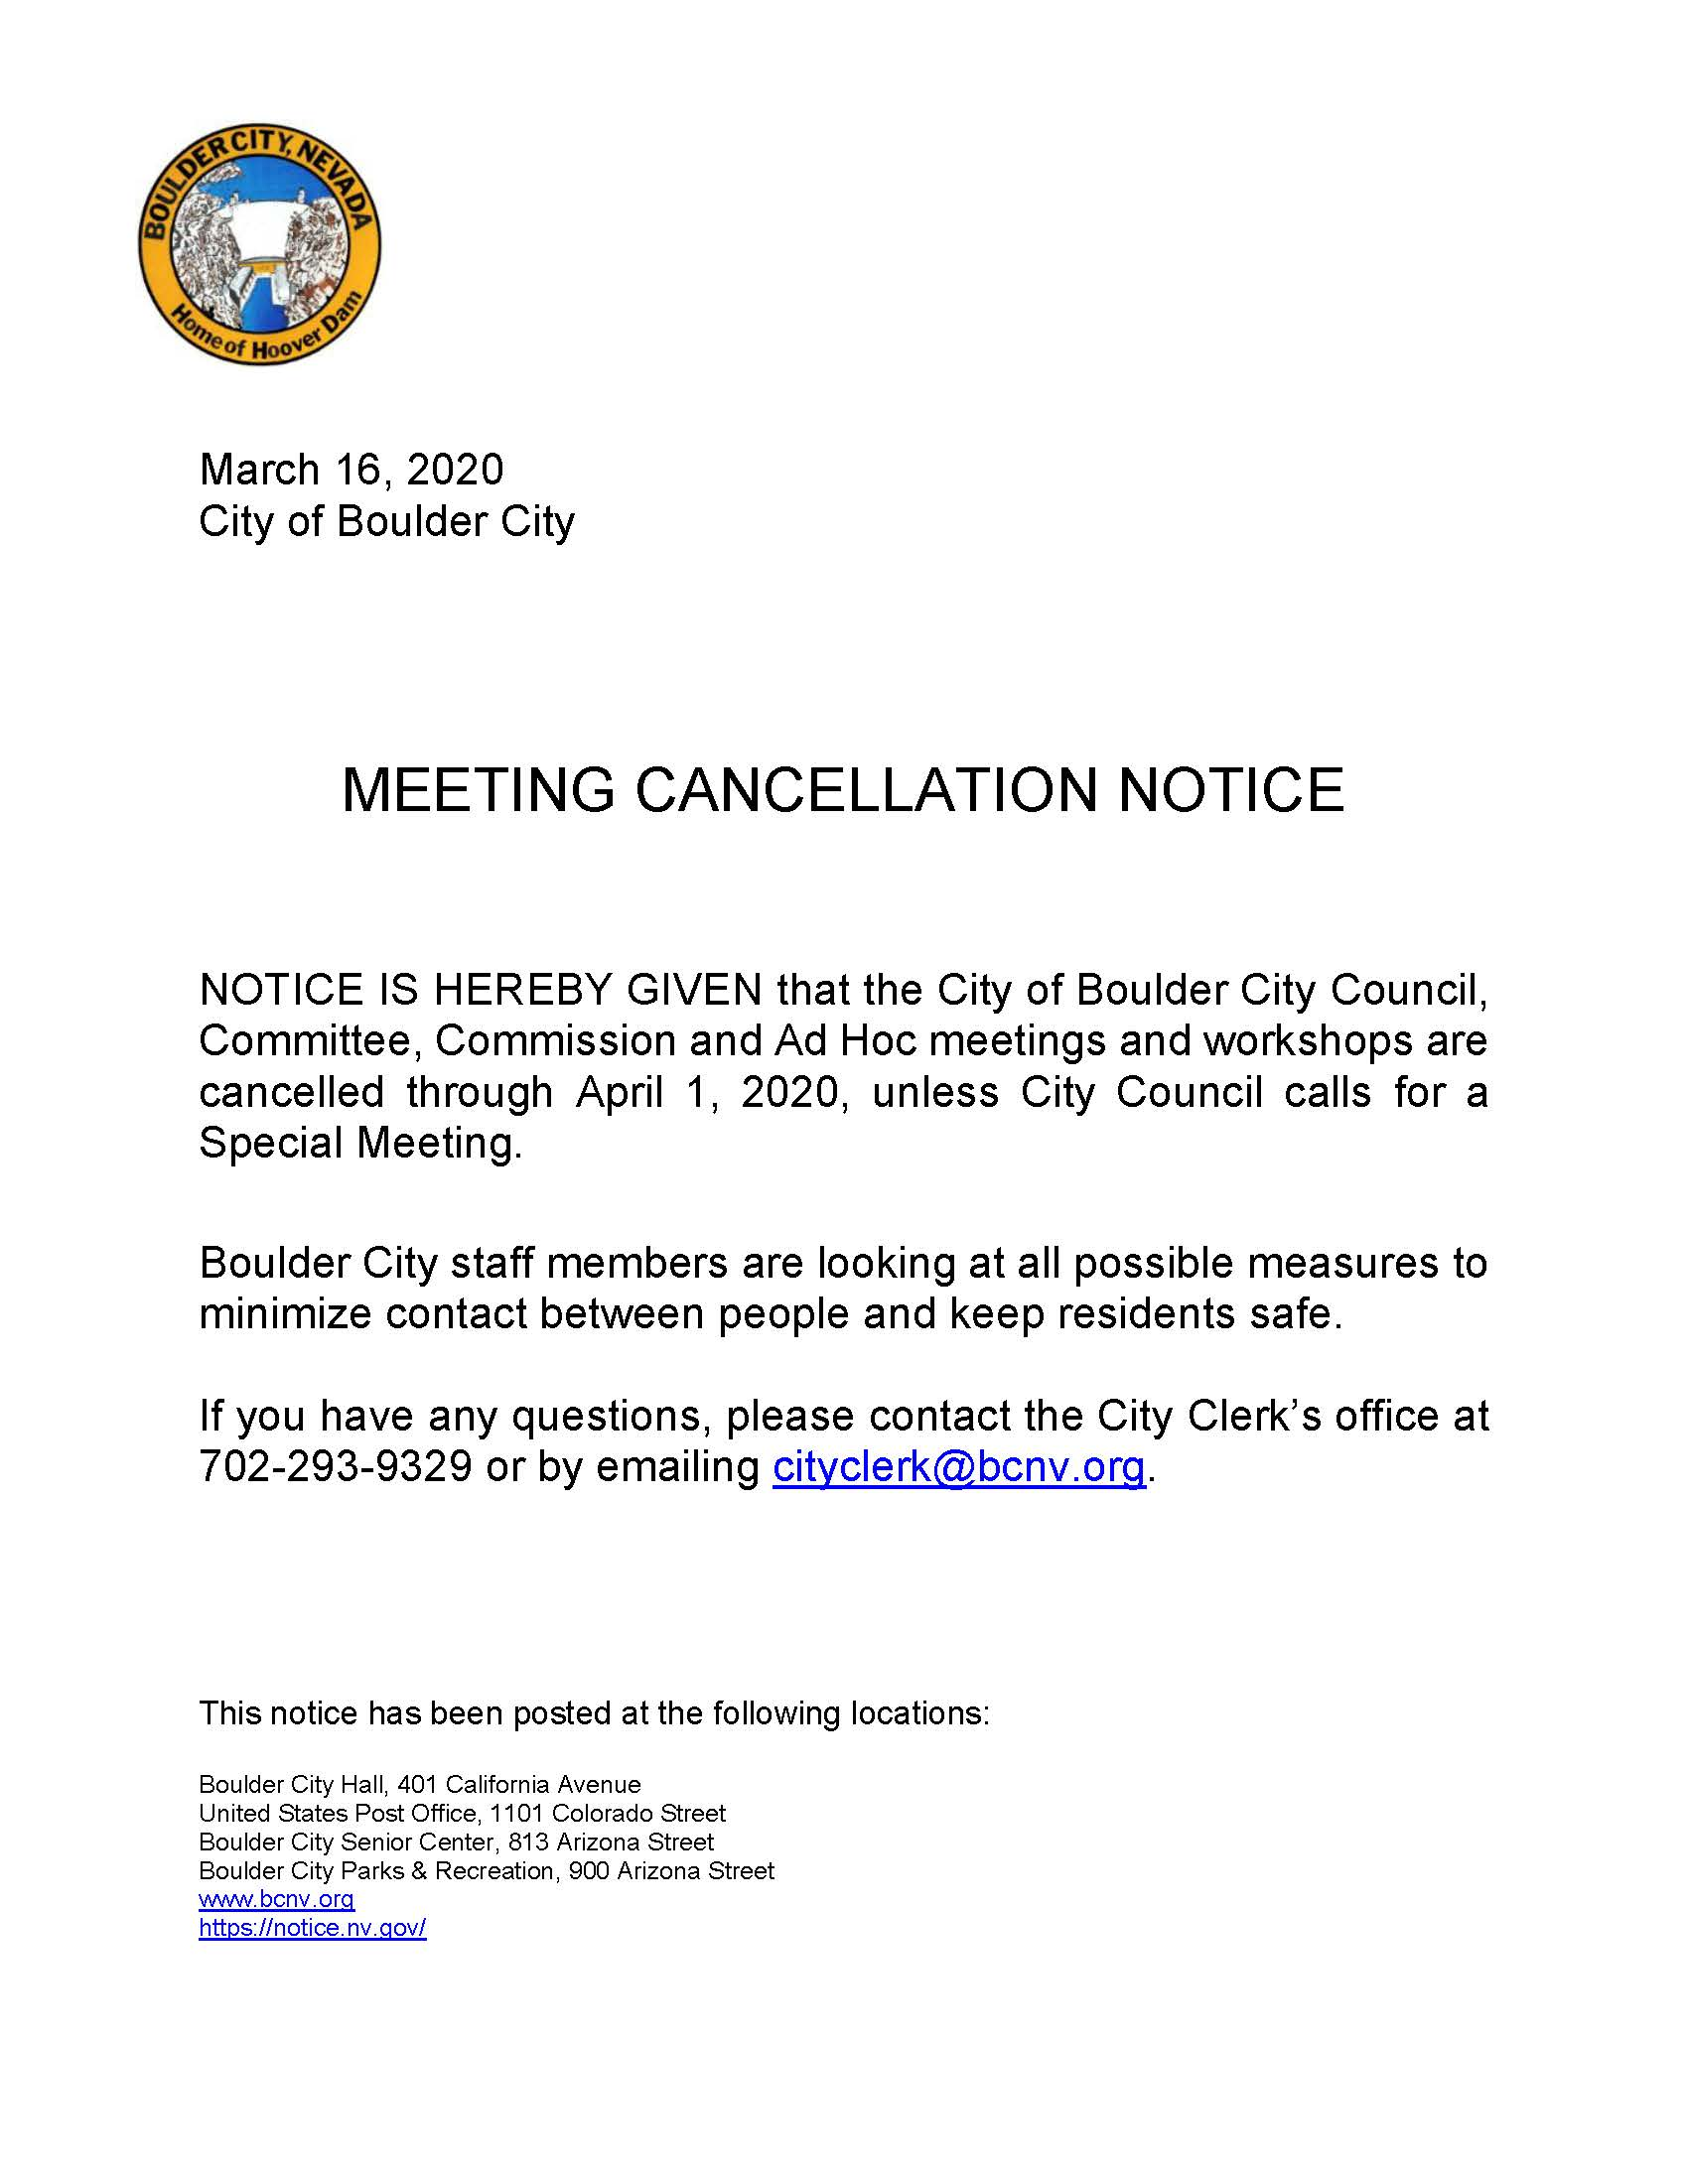 COVID-19 Meeting Cancellation Notice